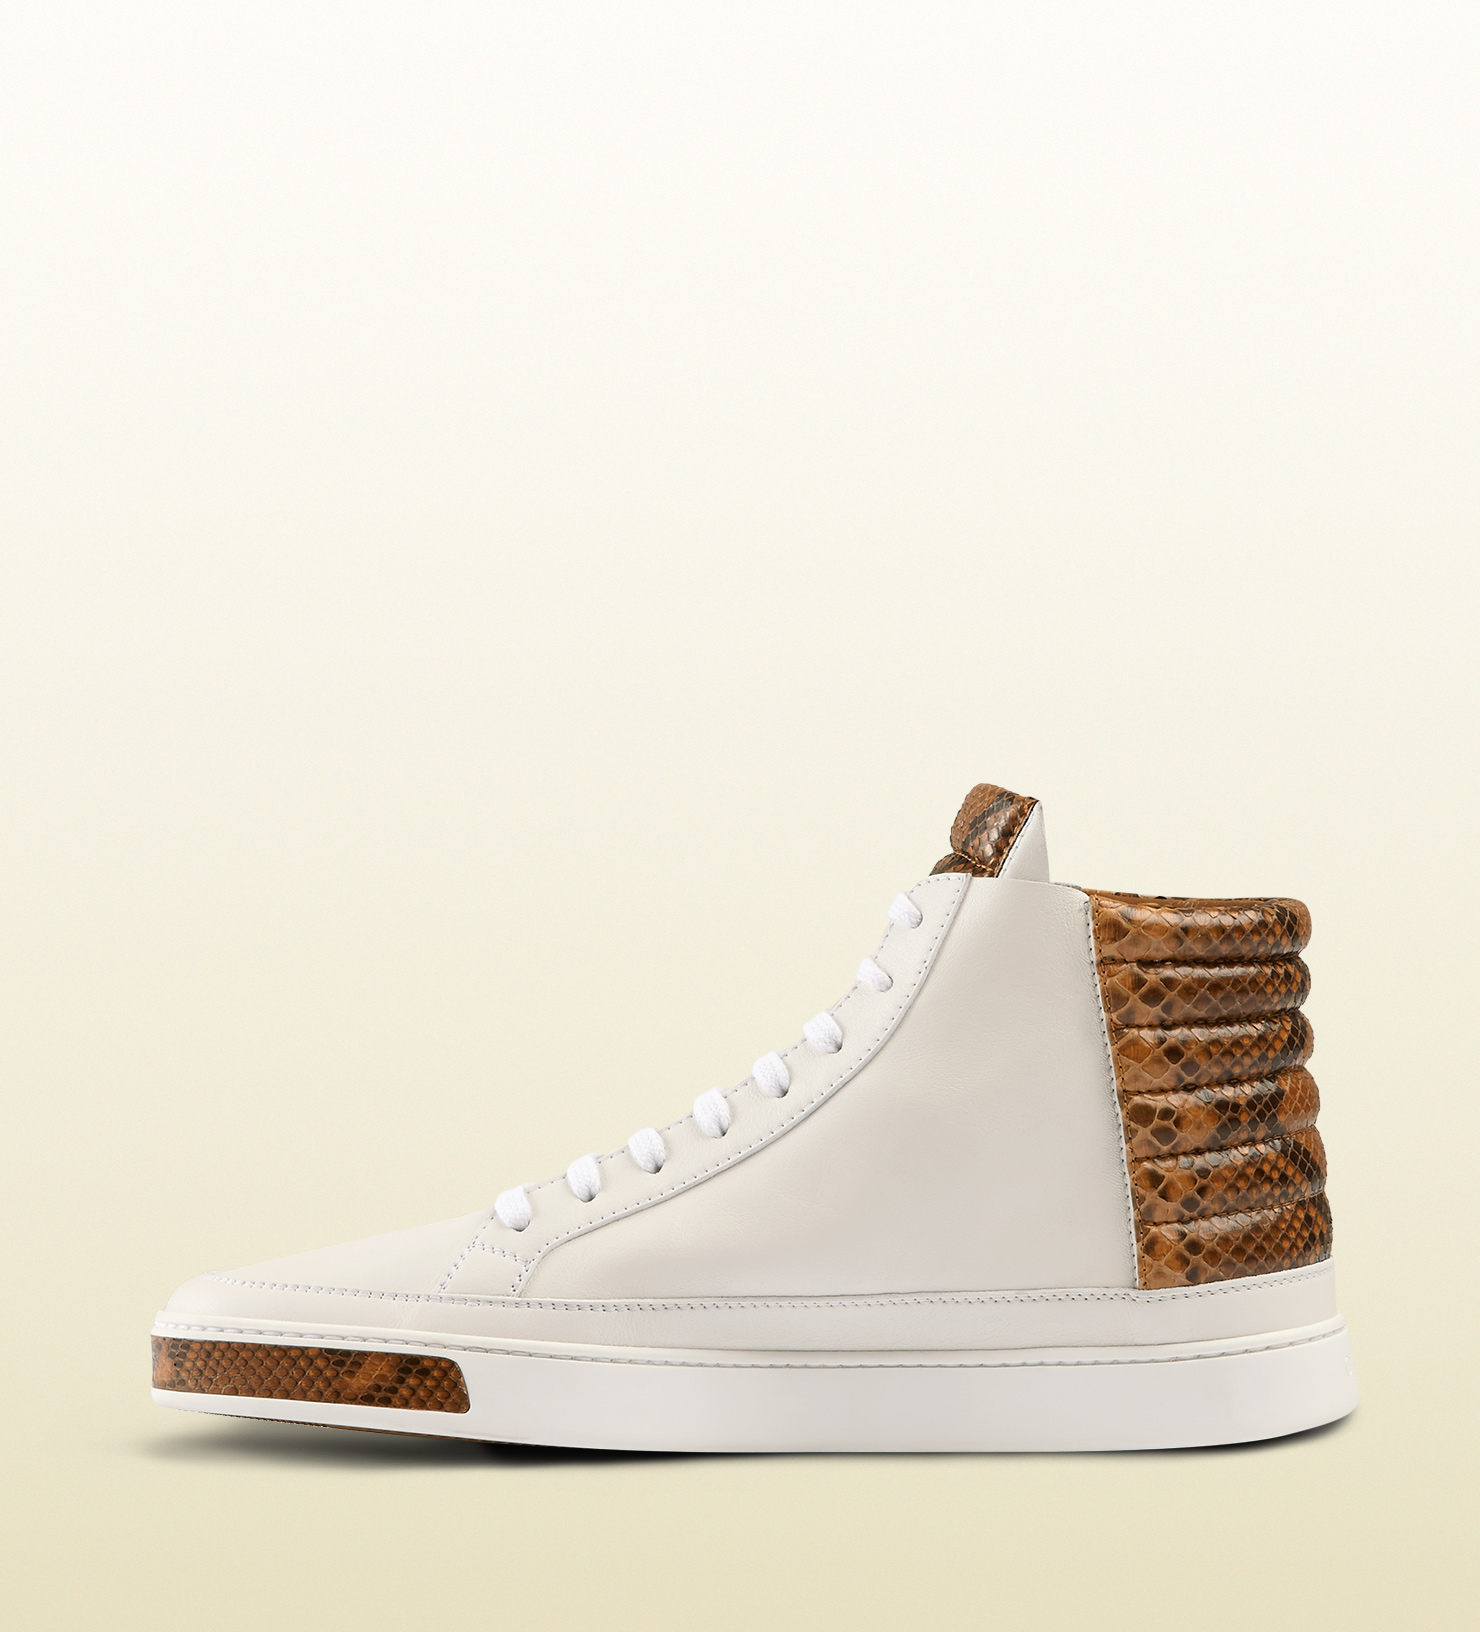 7ea998eb8f0 Lyst - Gucci Leather And Python High-top Sneaker in White for Men